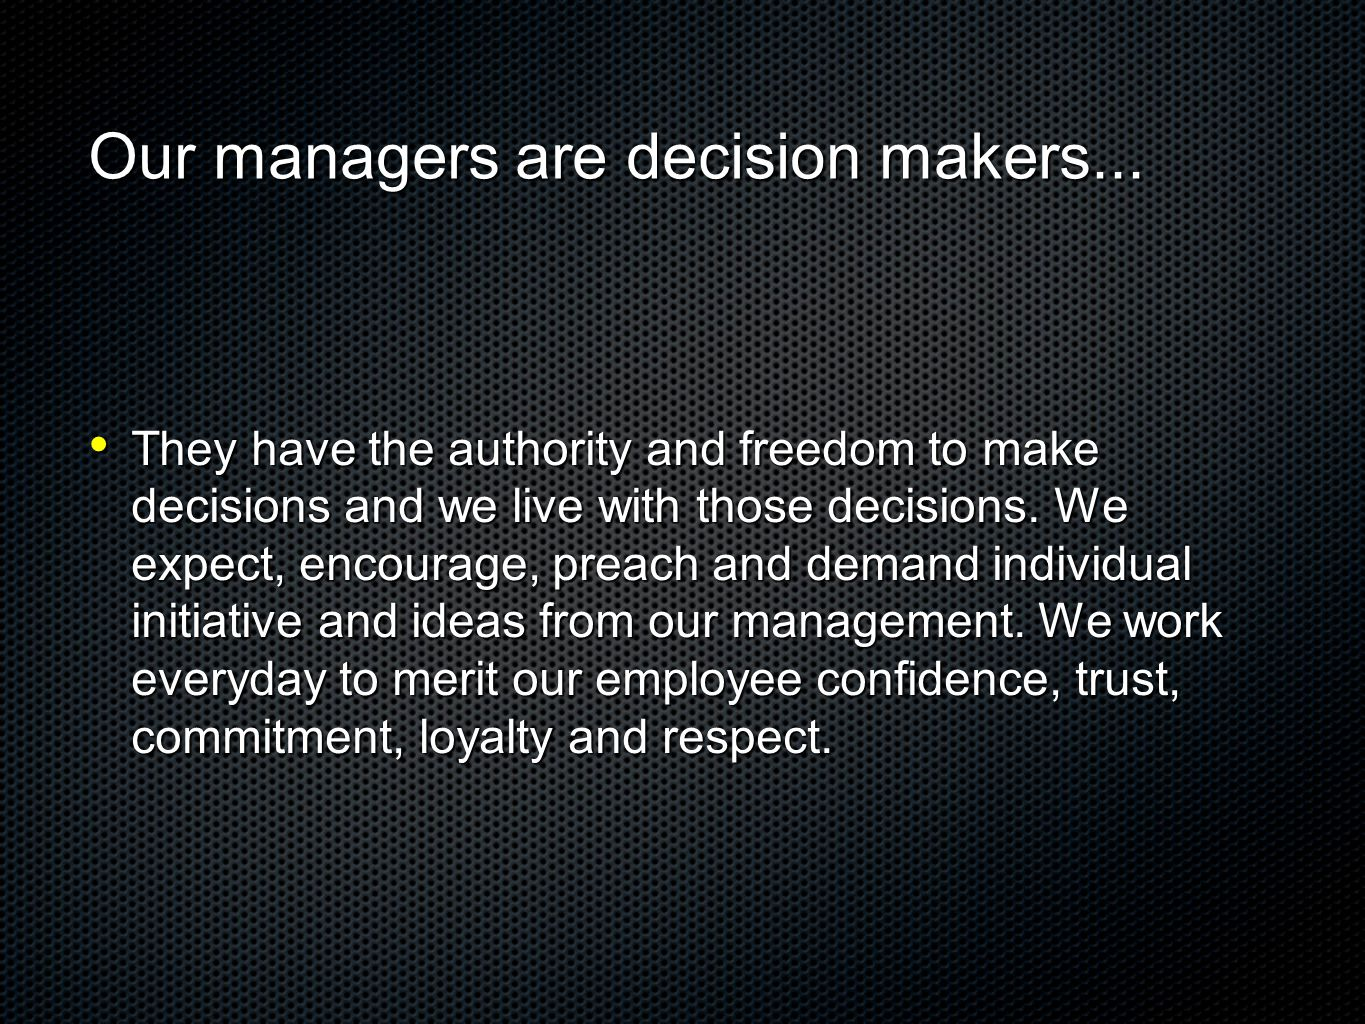 Our managers are decision makers...